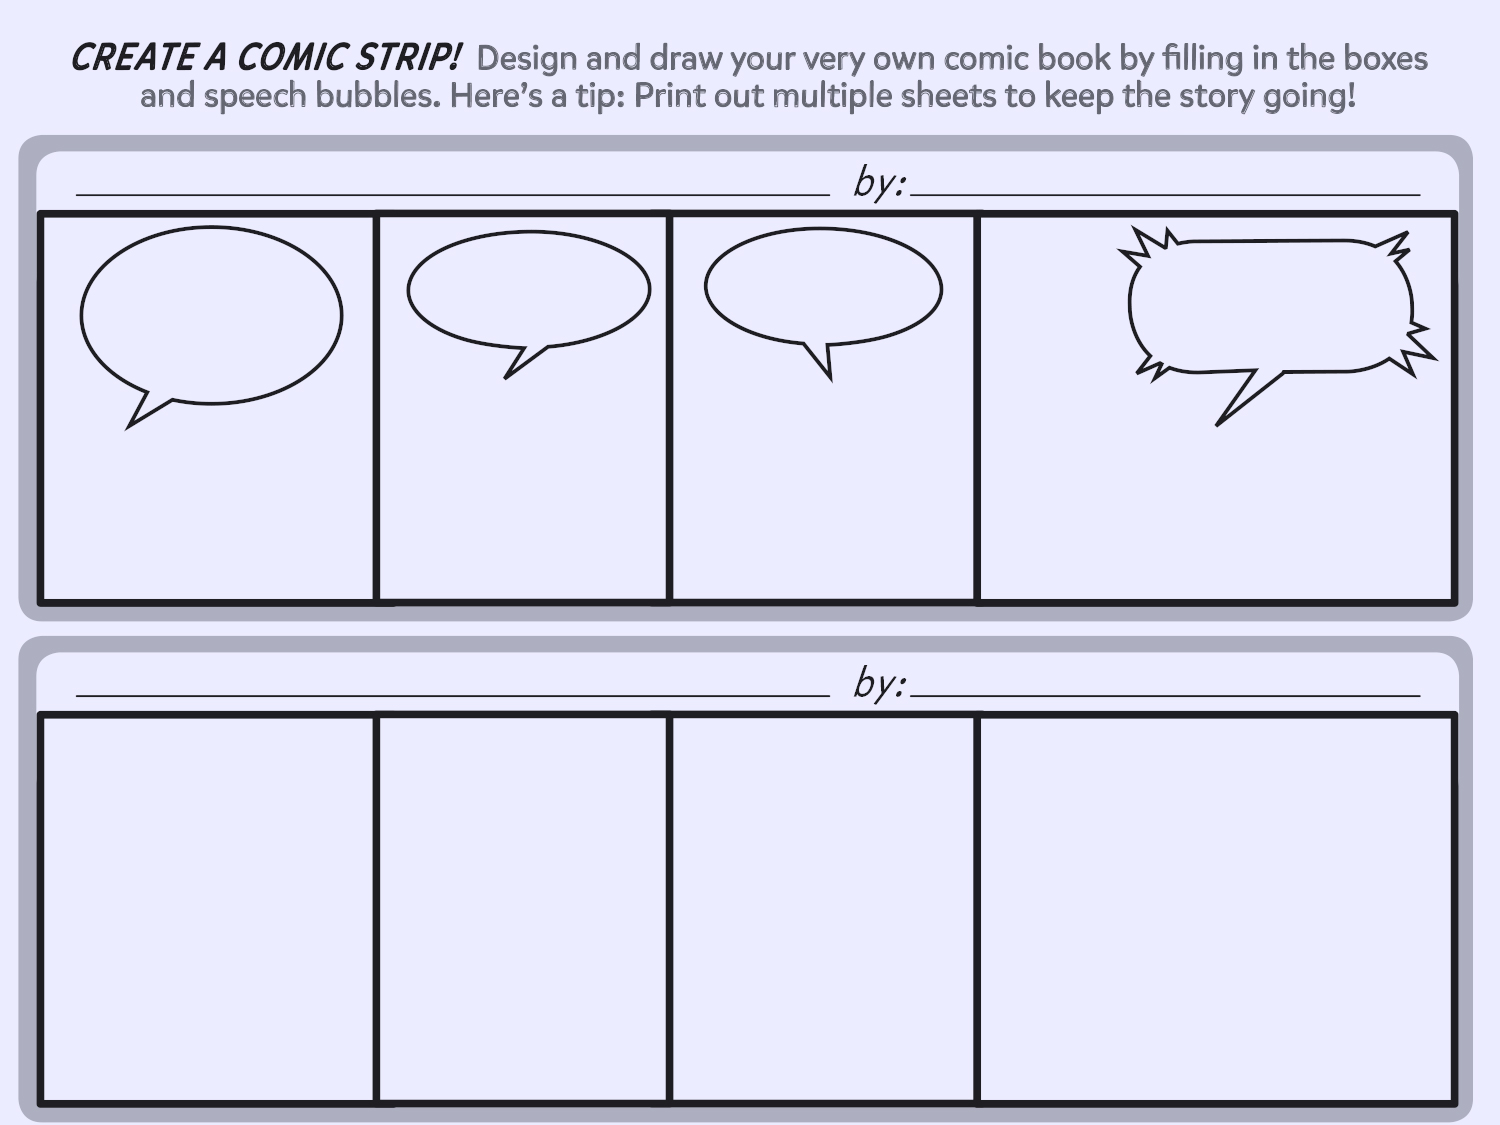 making a comic strip template  Create a Comic Strip: Printable Template | Worksheets ...